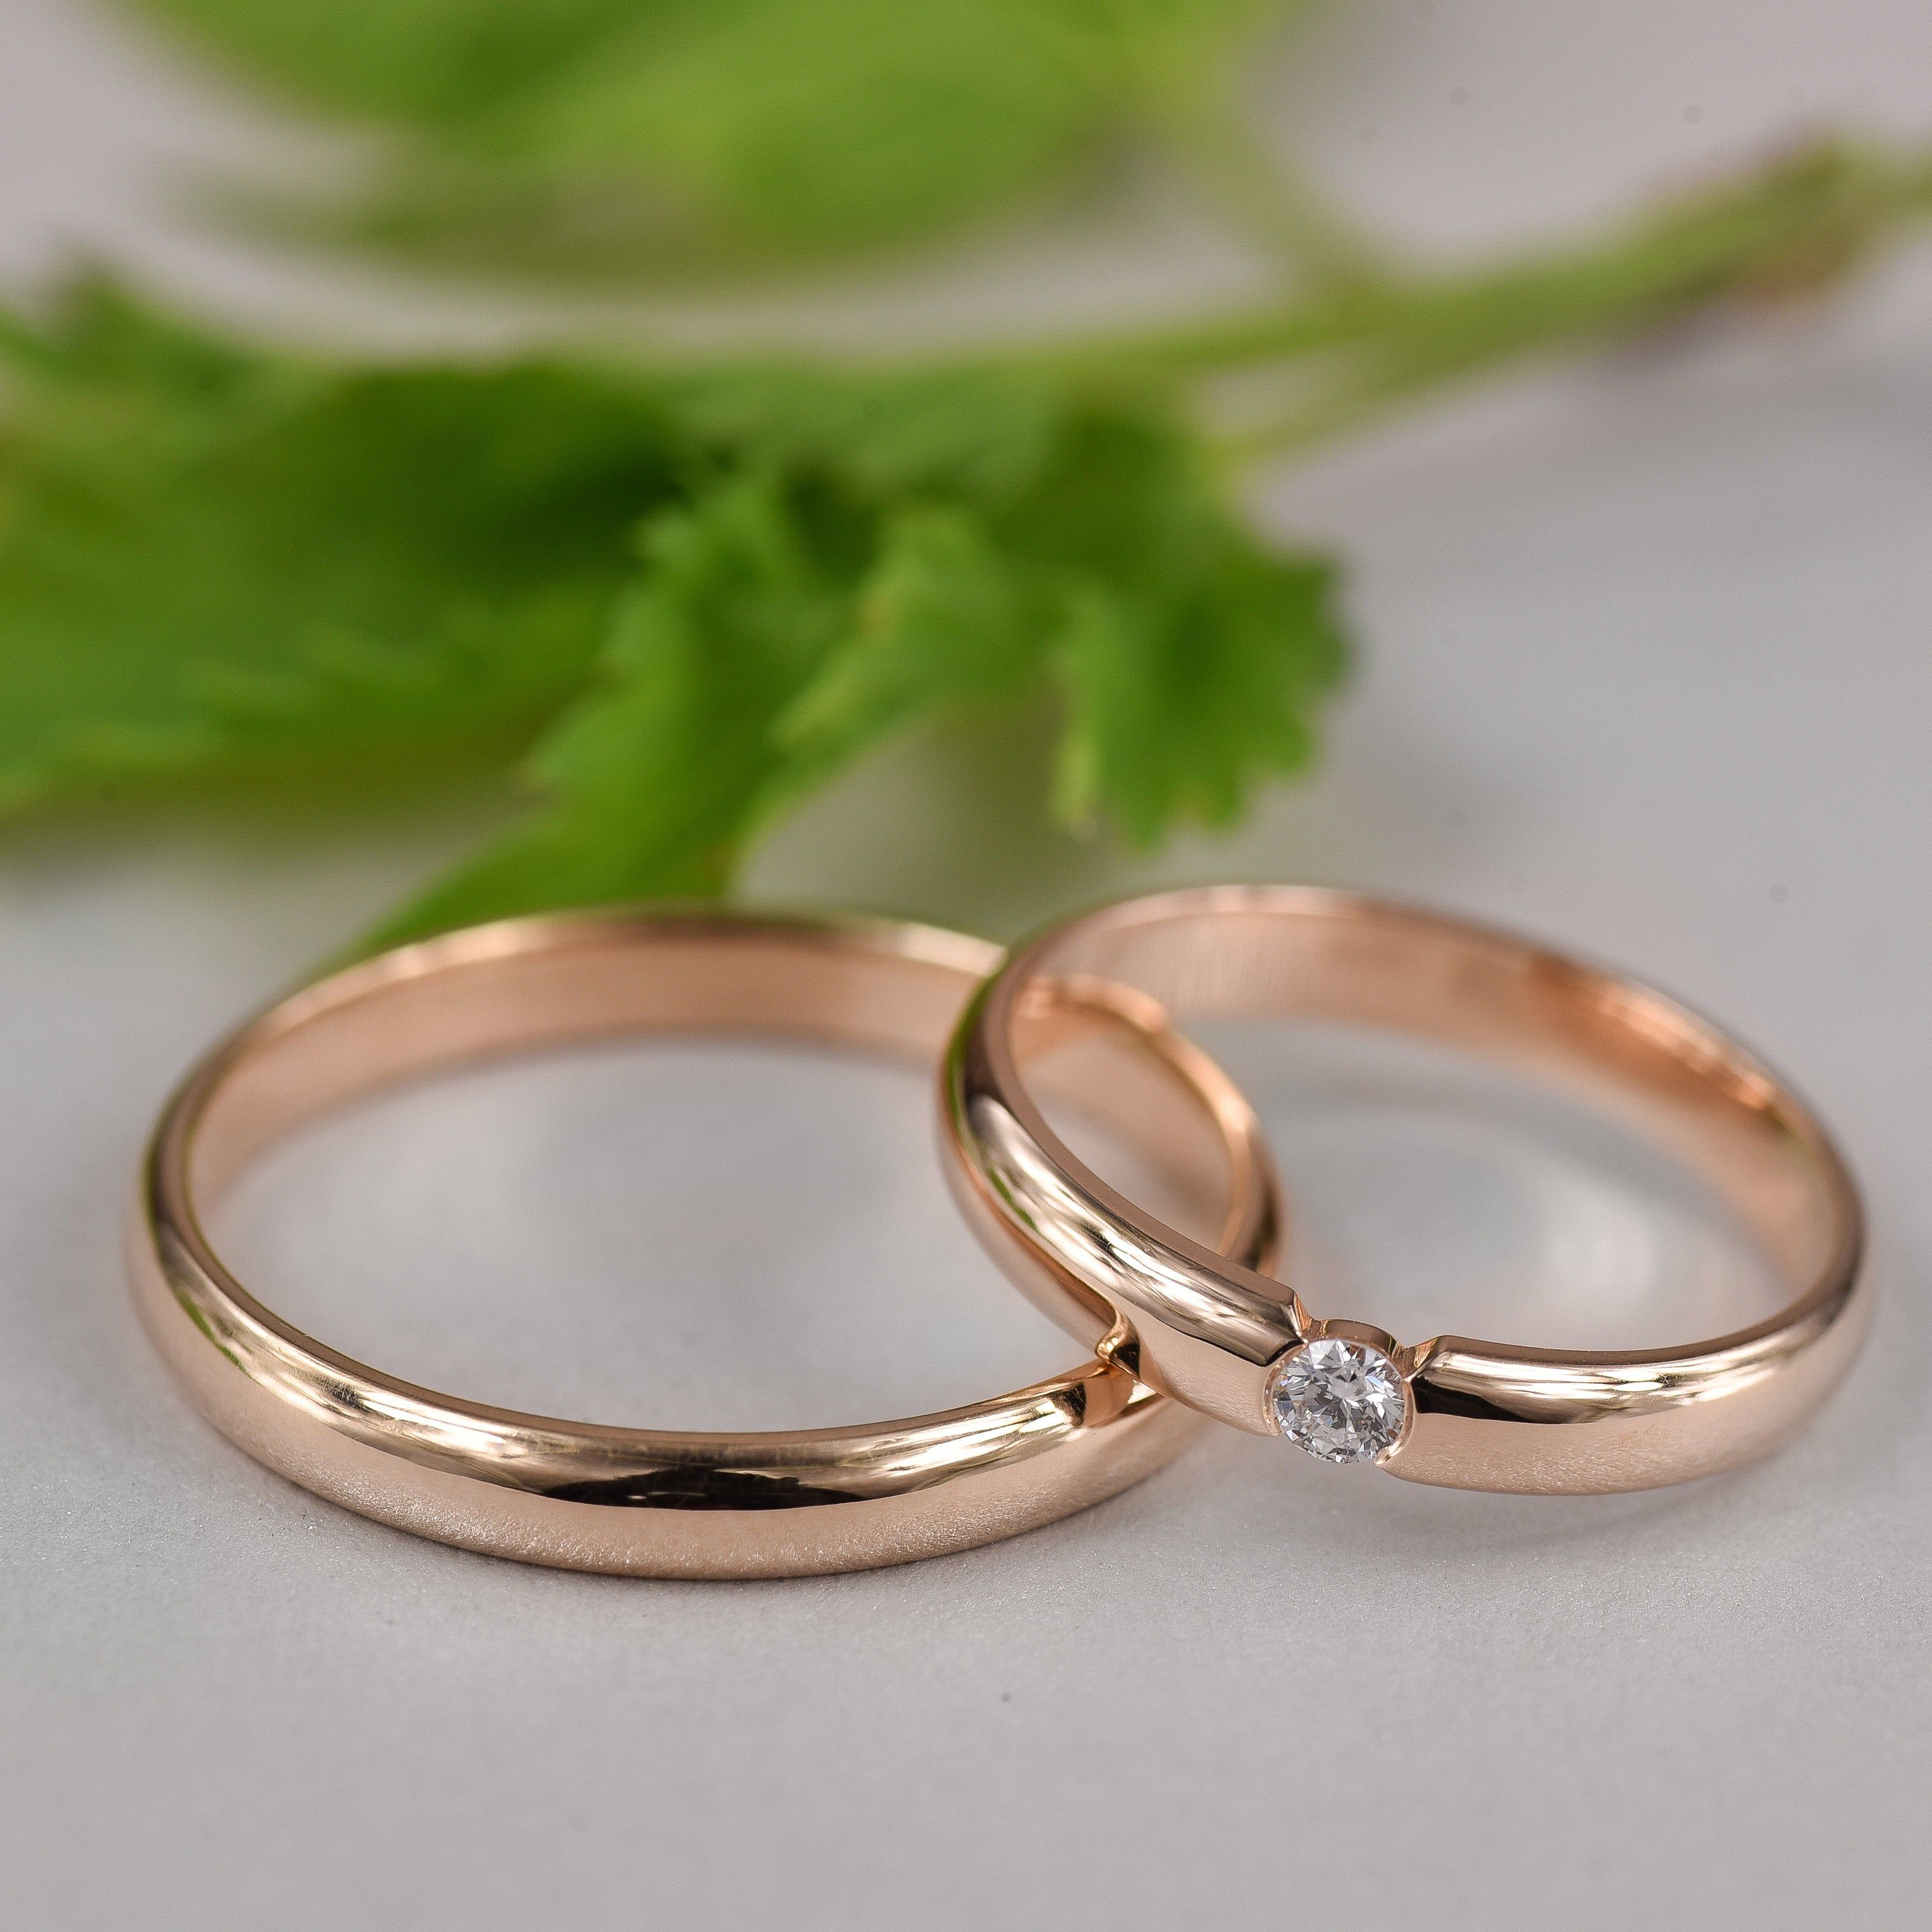 This is a picture of His and Hers Wedding Rings, His and Her Promise Rings For Couples